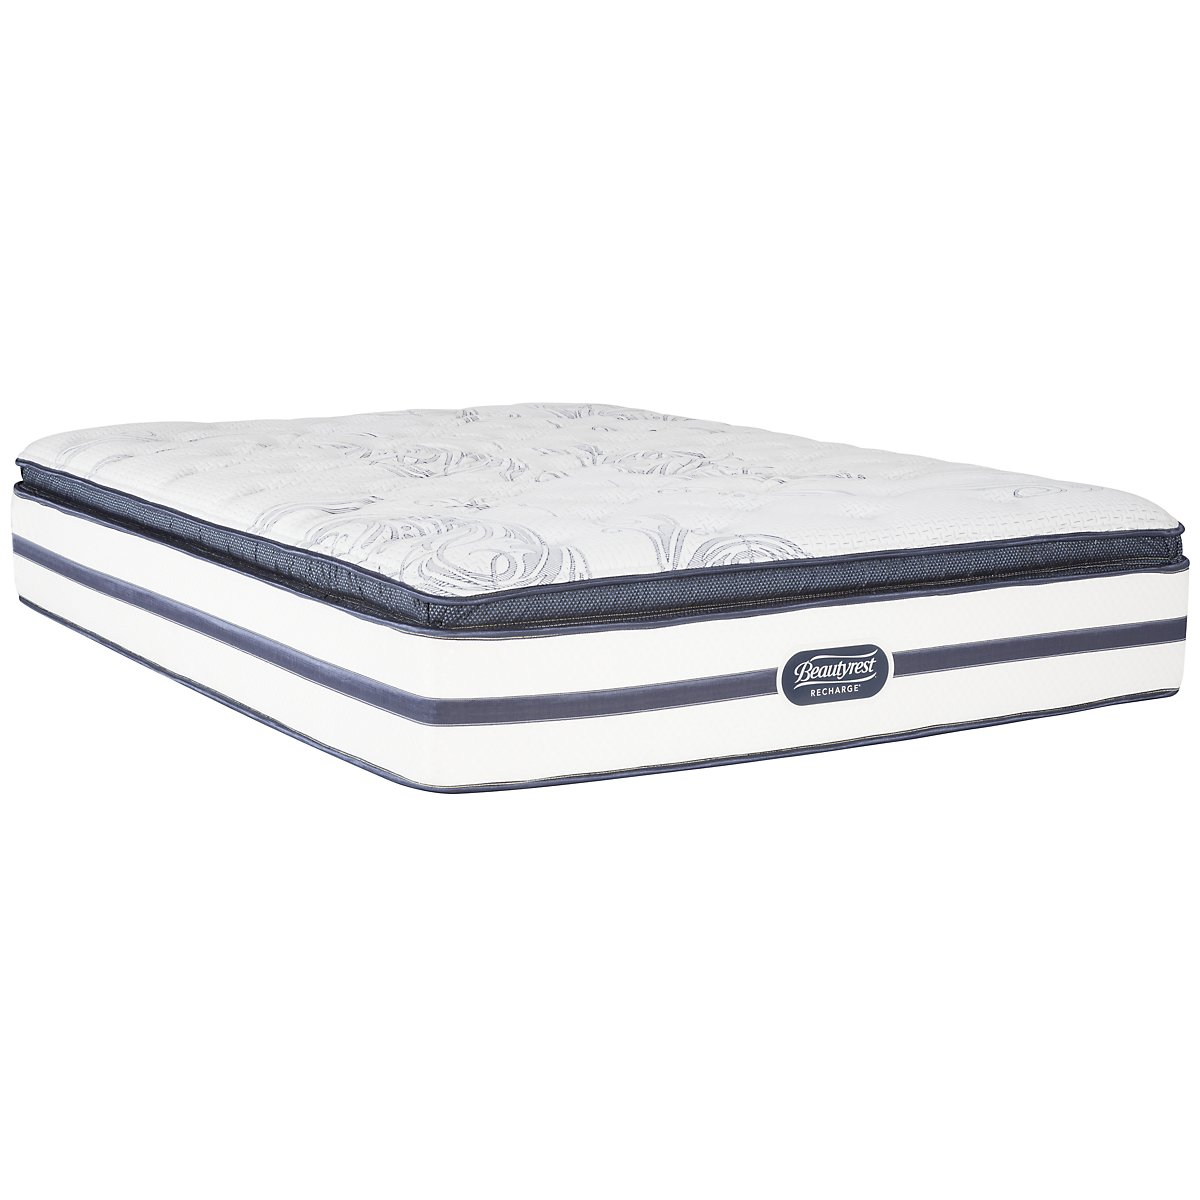 Beautyrest Recharge Audrina Luxury Firm Innerspring Pillow Top Mattress